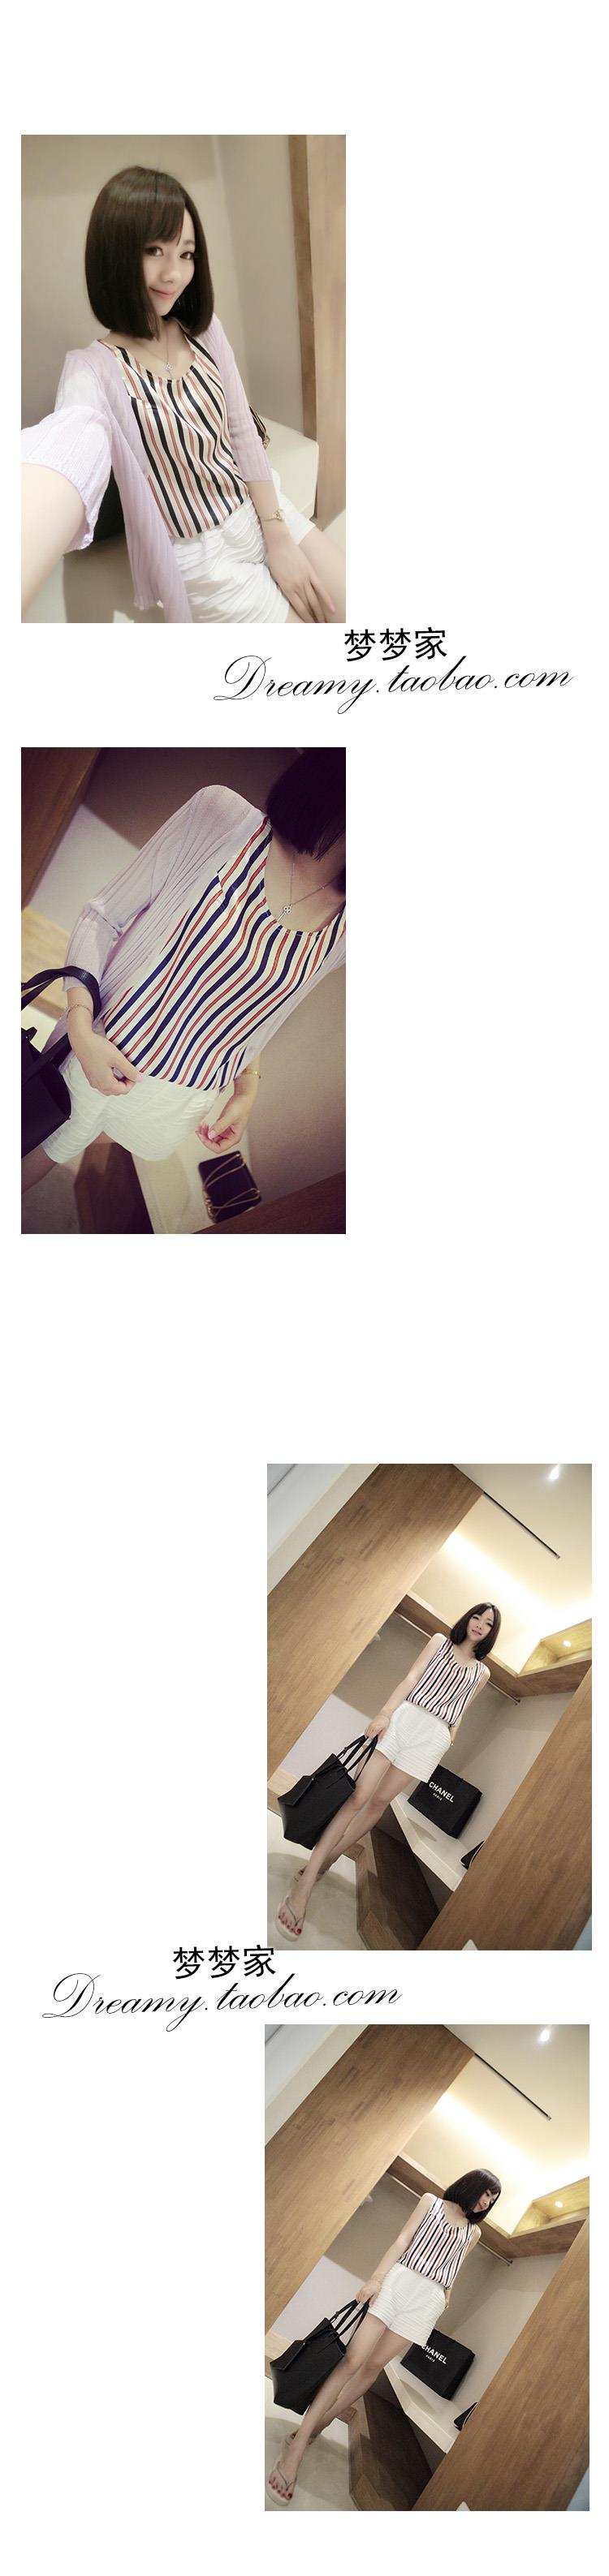 [BabyV] Women_Dress_Fashion_Korean_Shirt #0004 - CHEAP SELLING